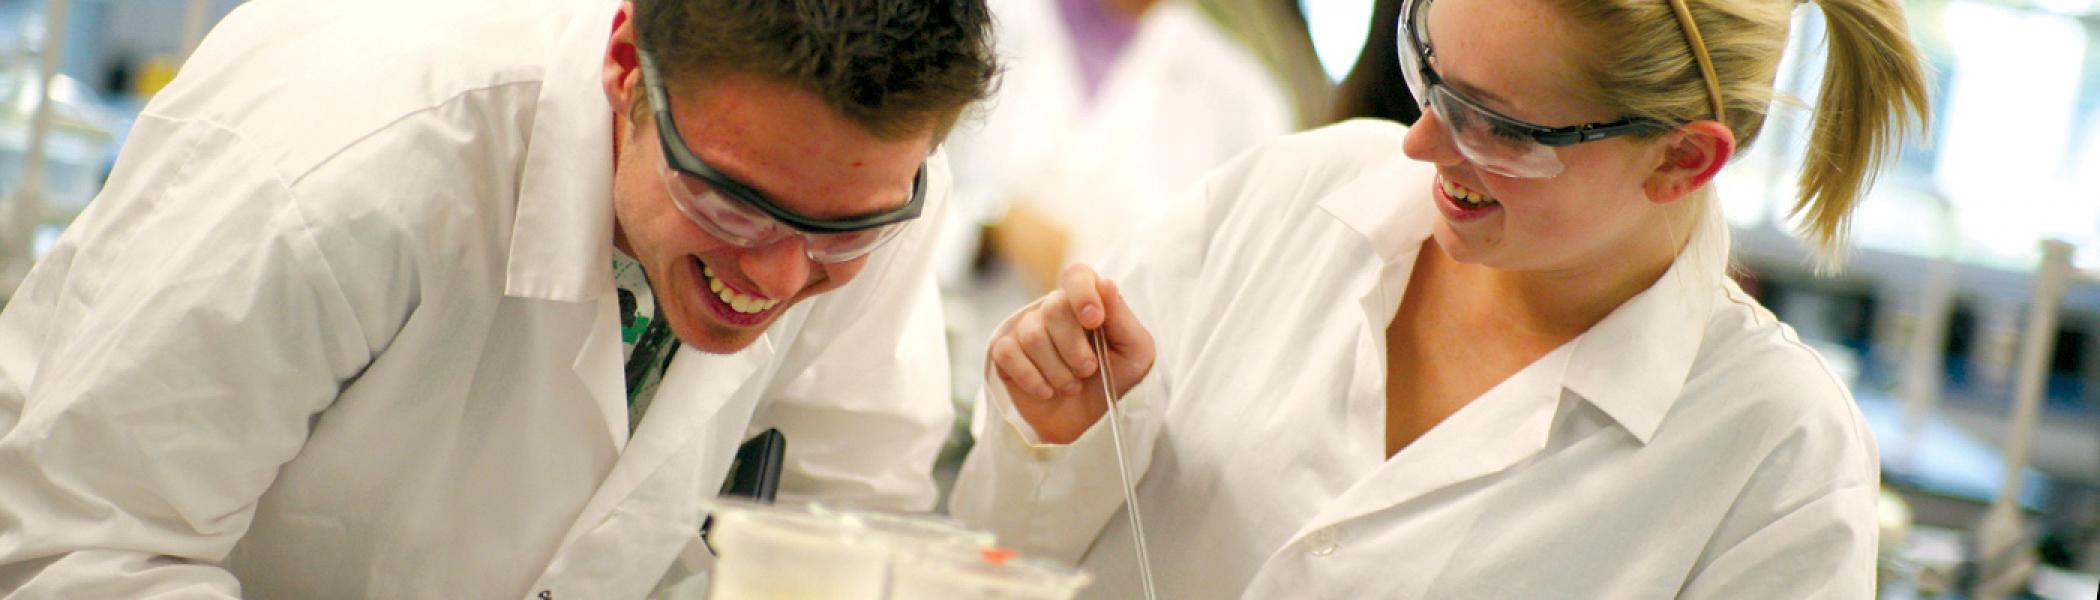 2 Students in lab coats working with test tubes in a schience lab, wearing goggles